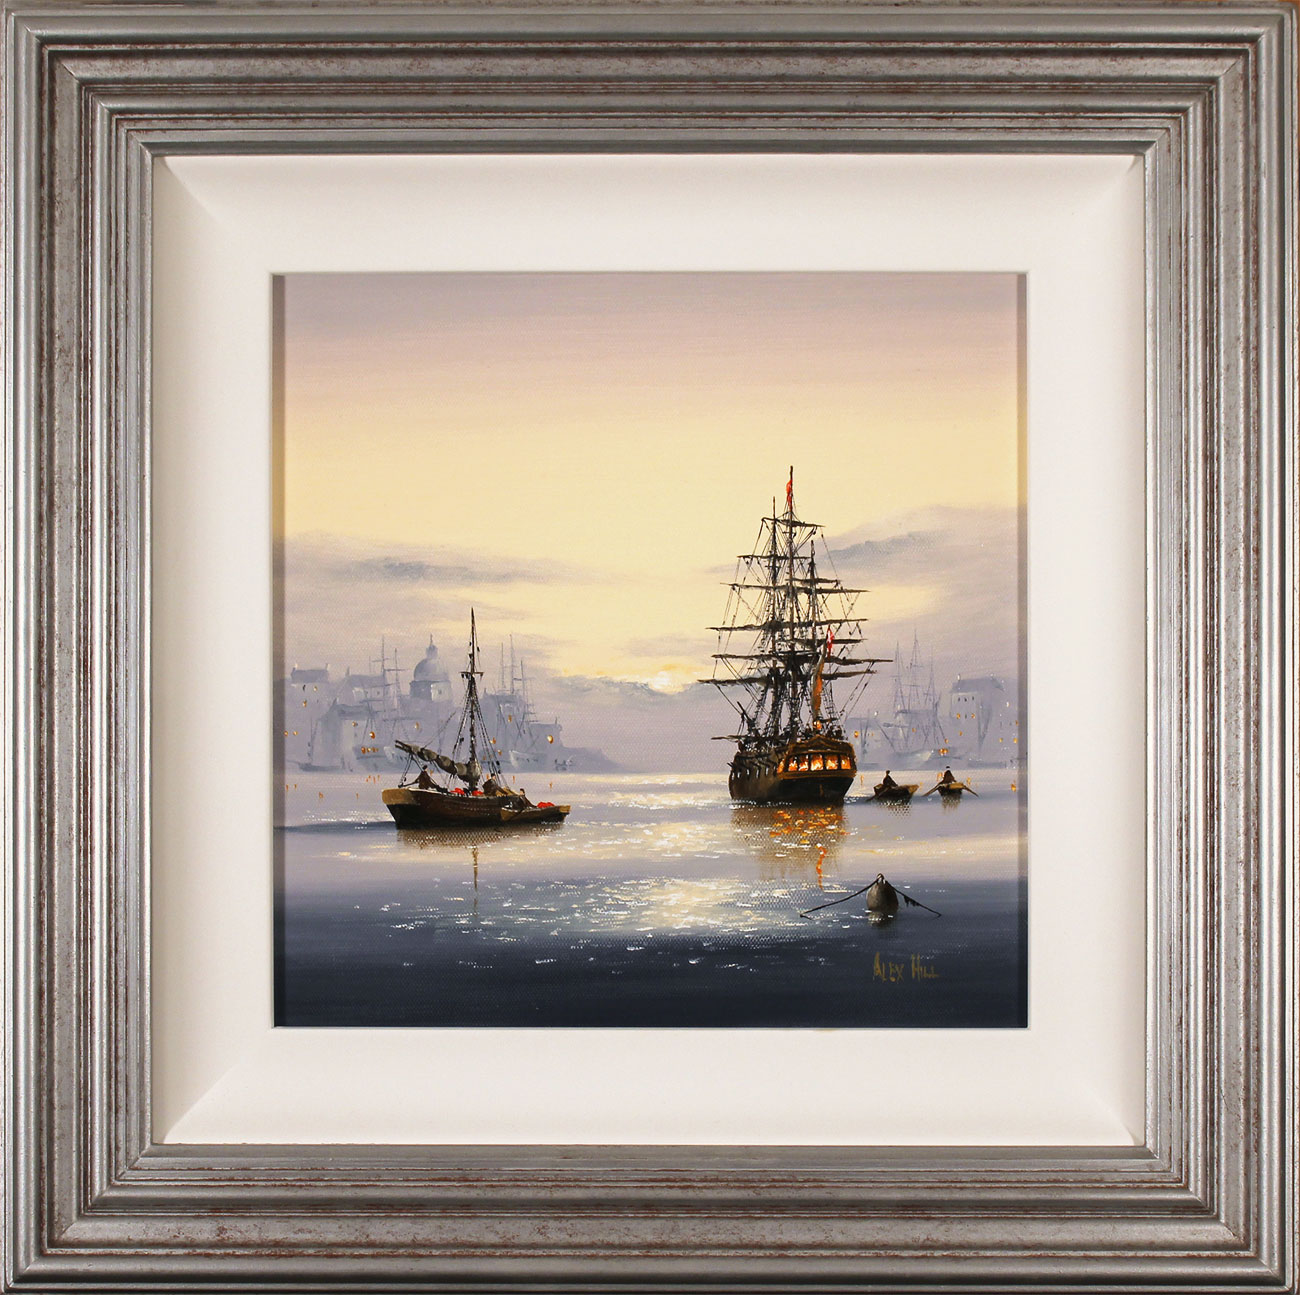 Alex Hill, Original oil painting on canvas, Set Sail at Sunrise, click to enlarge